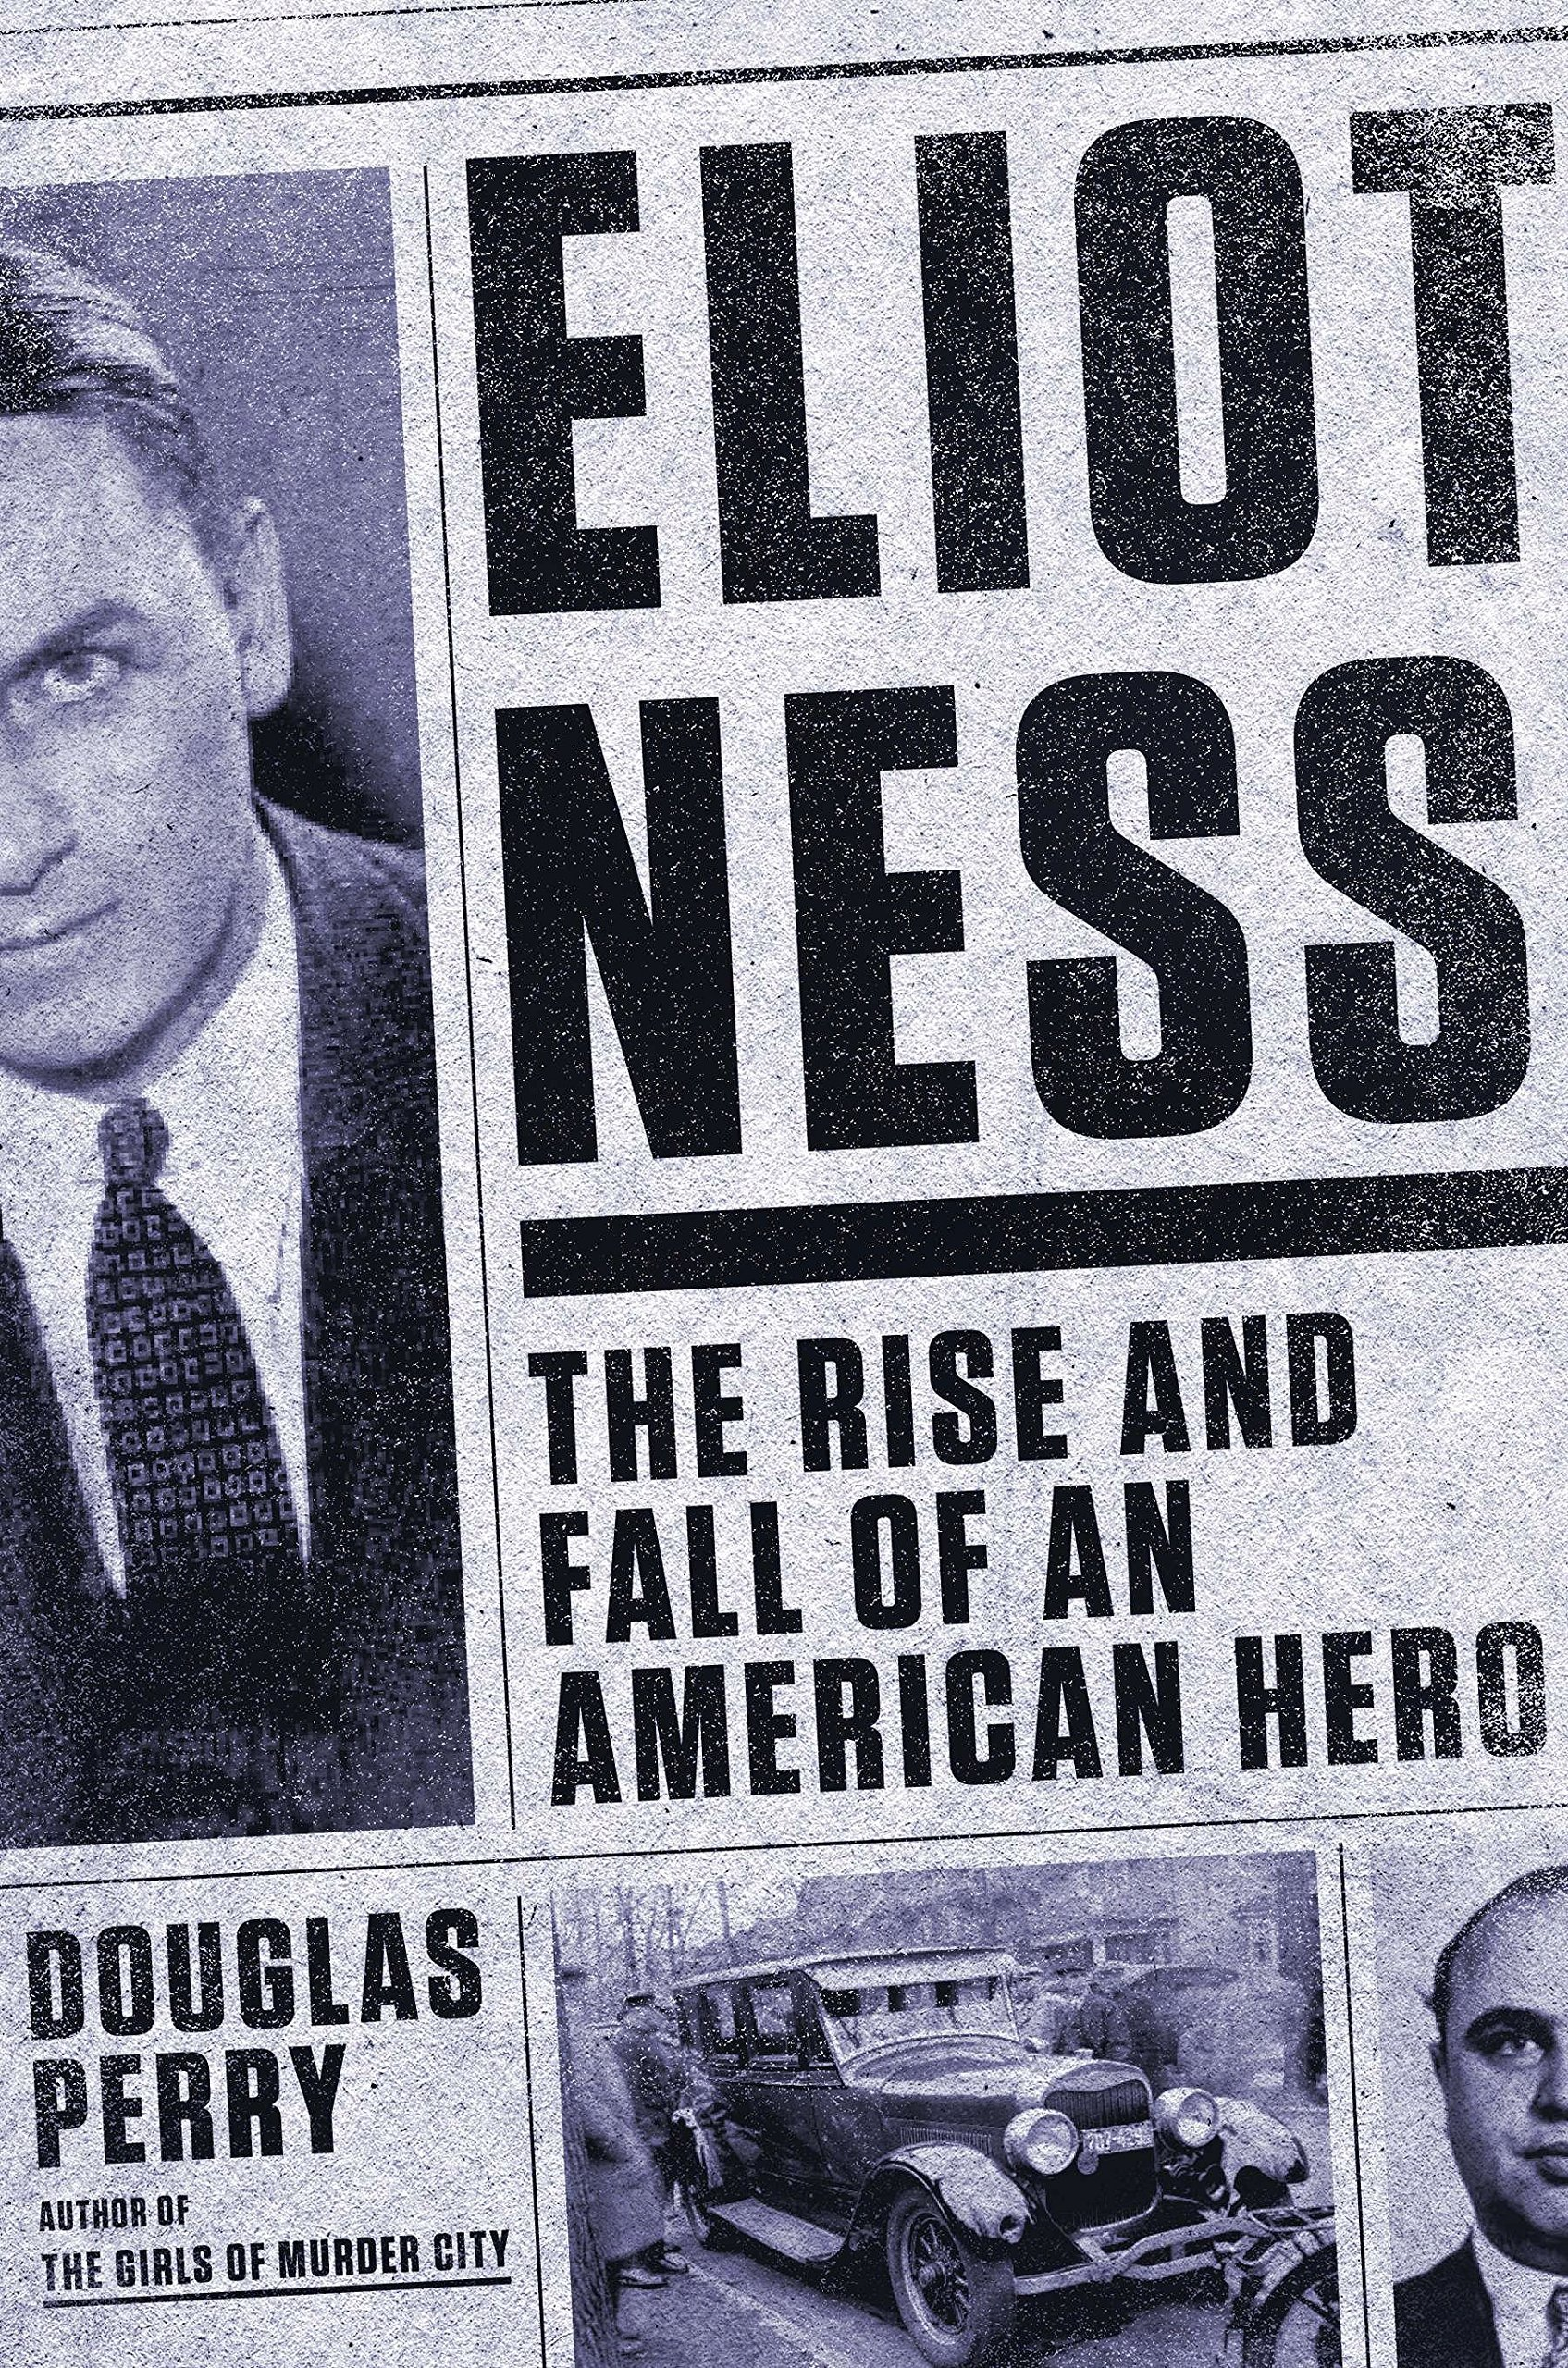 Amazon fr - Eliot Ness: The Rise and Fall of an American